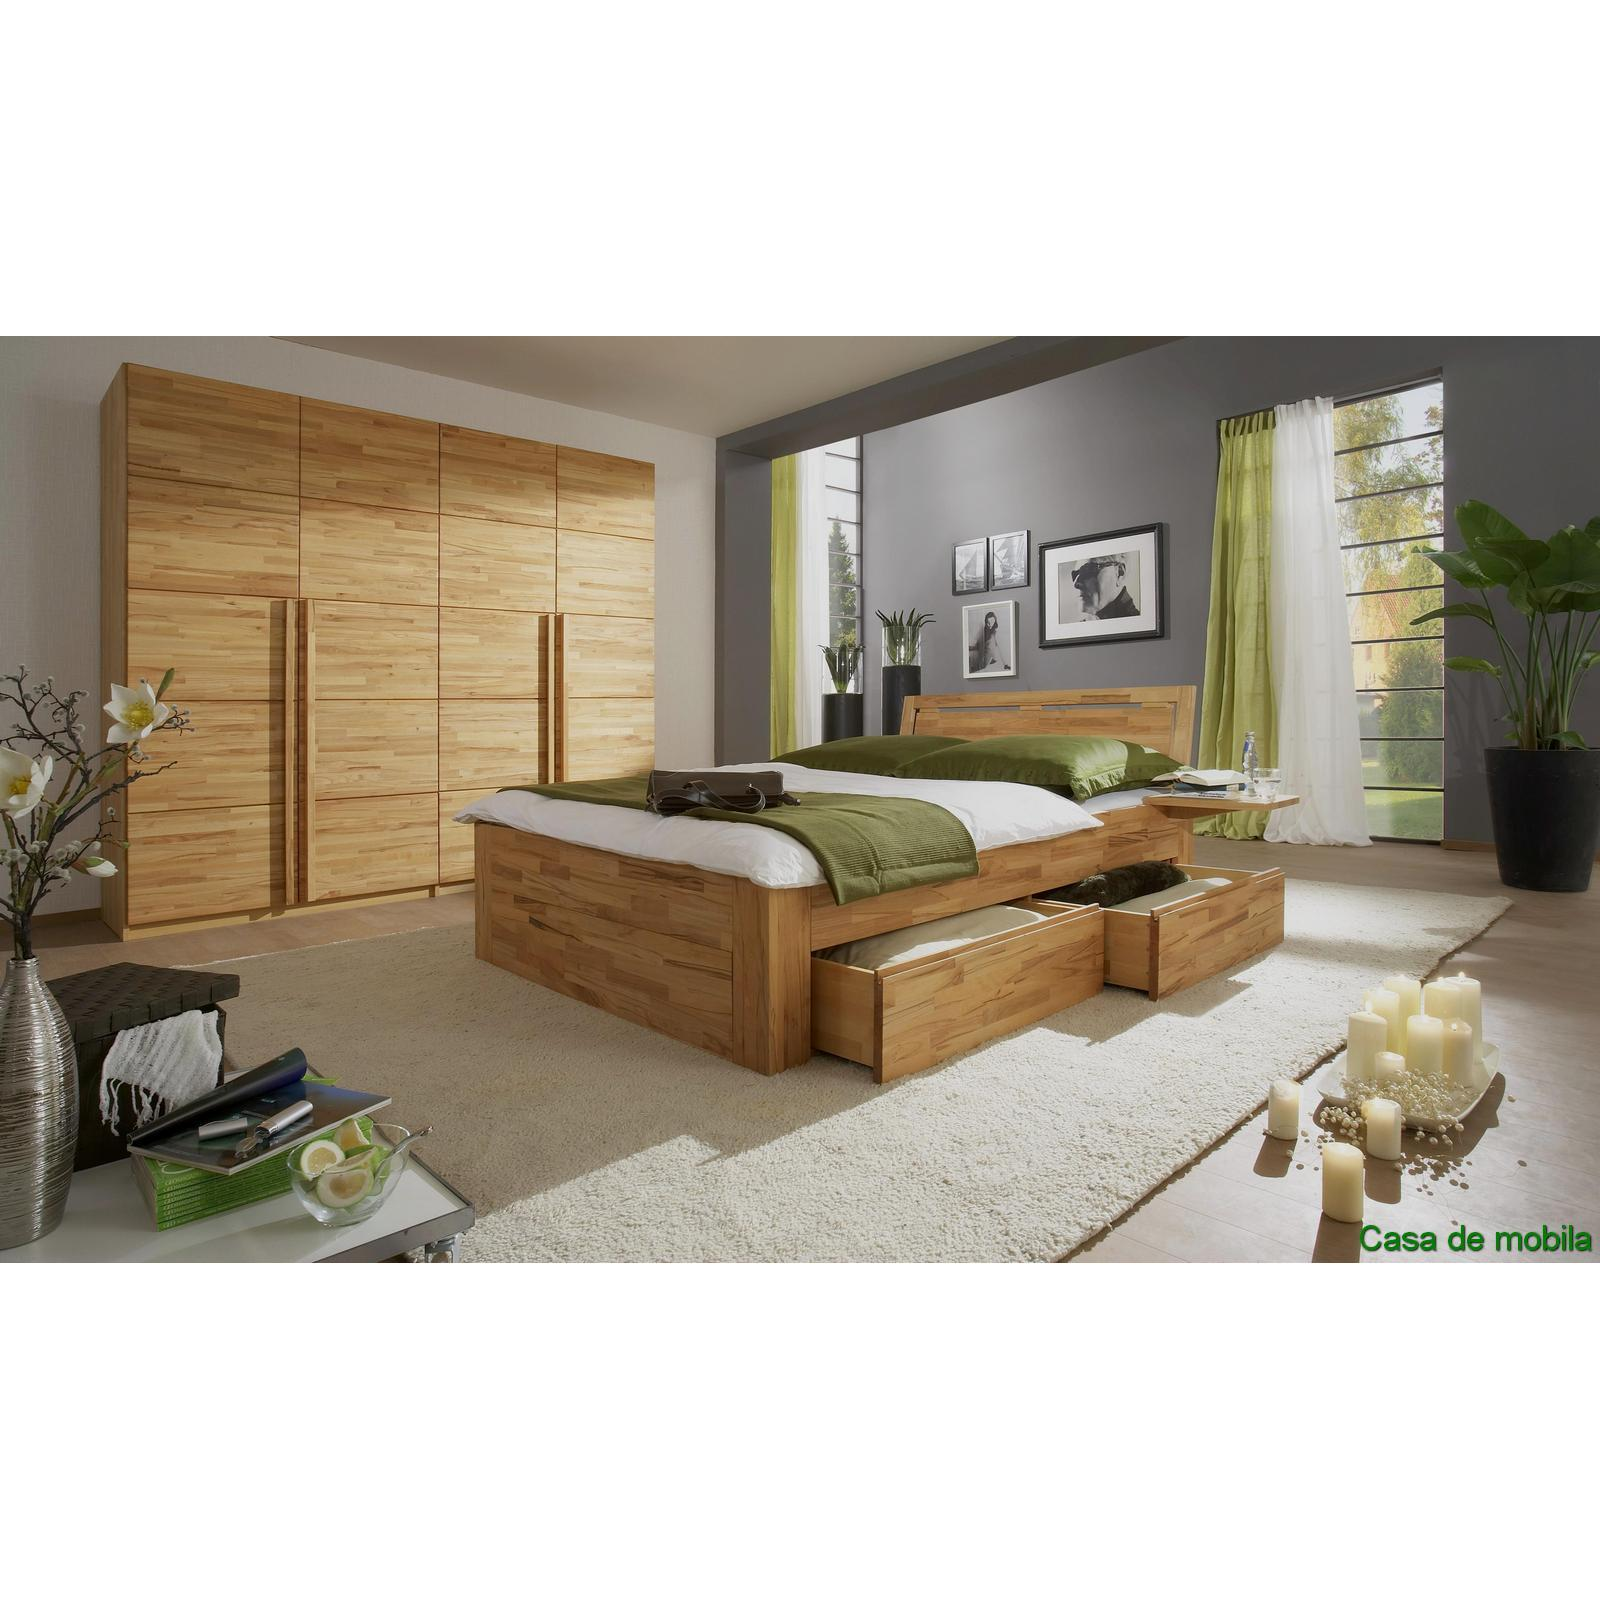 vollholz schlafzimmer komplett kernbuche buche massiv. Black Bedroom Furniture Sets. Home Design Ideas